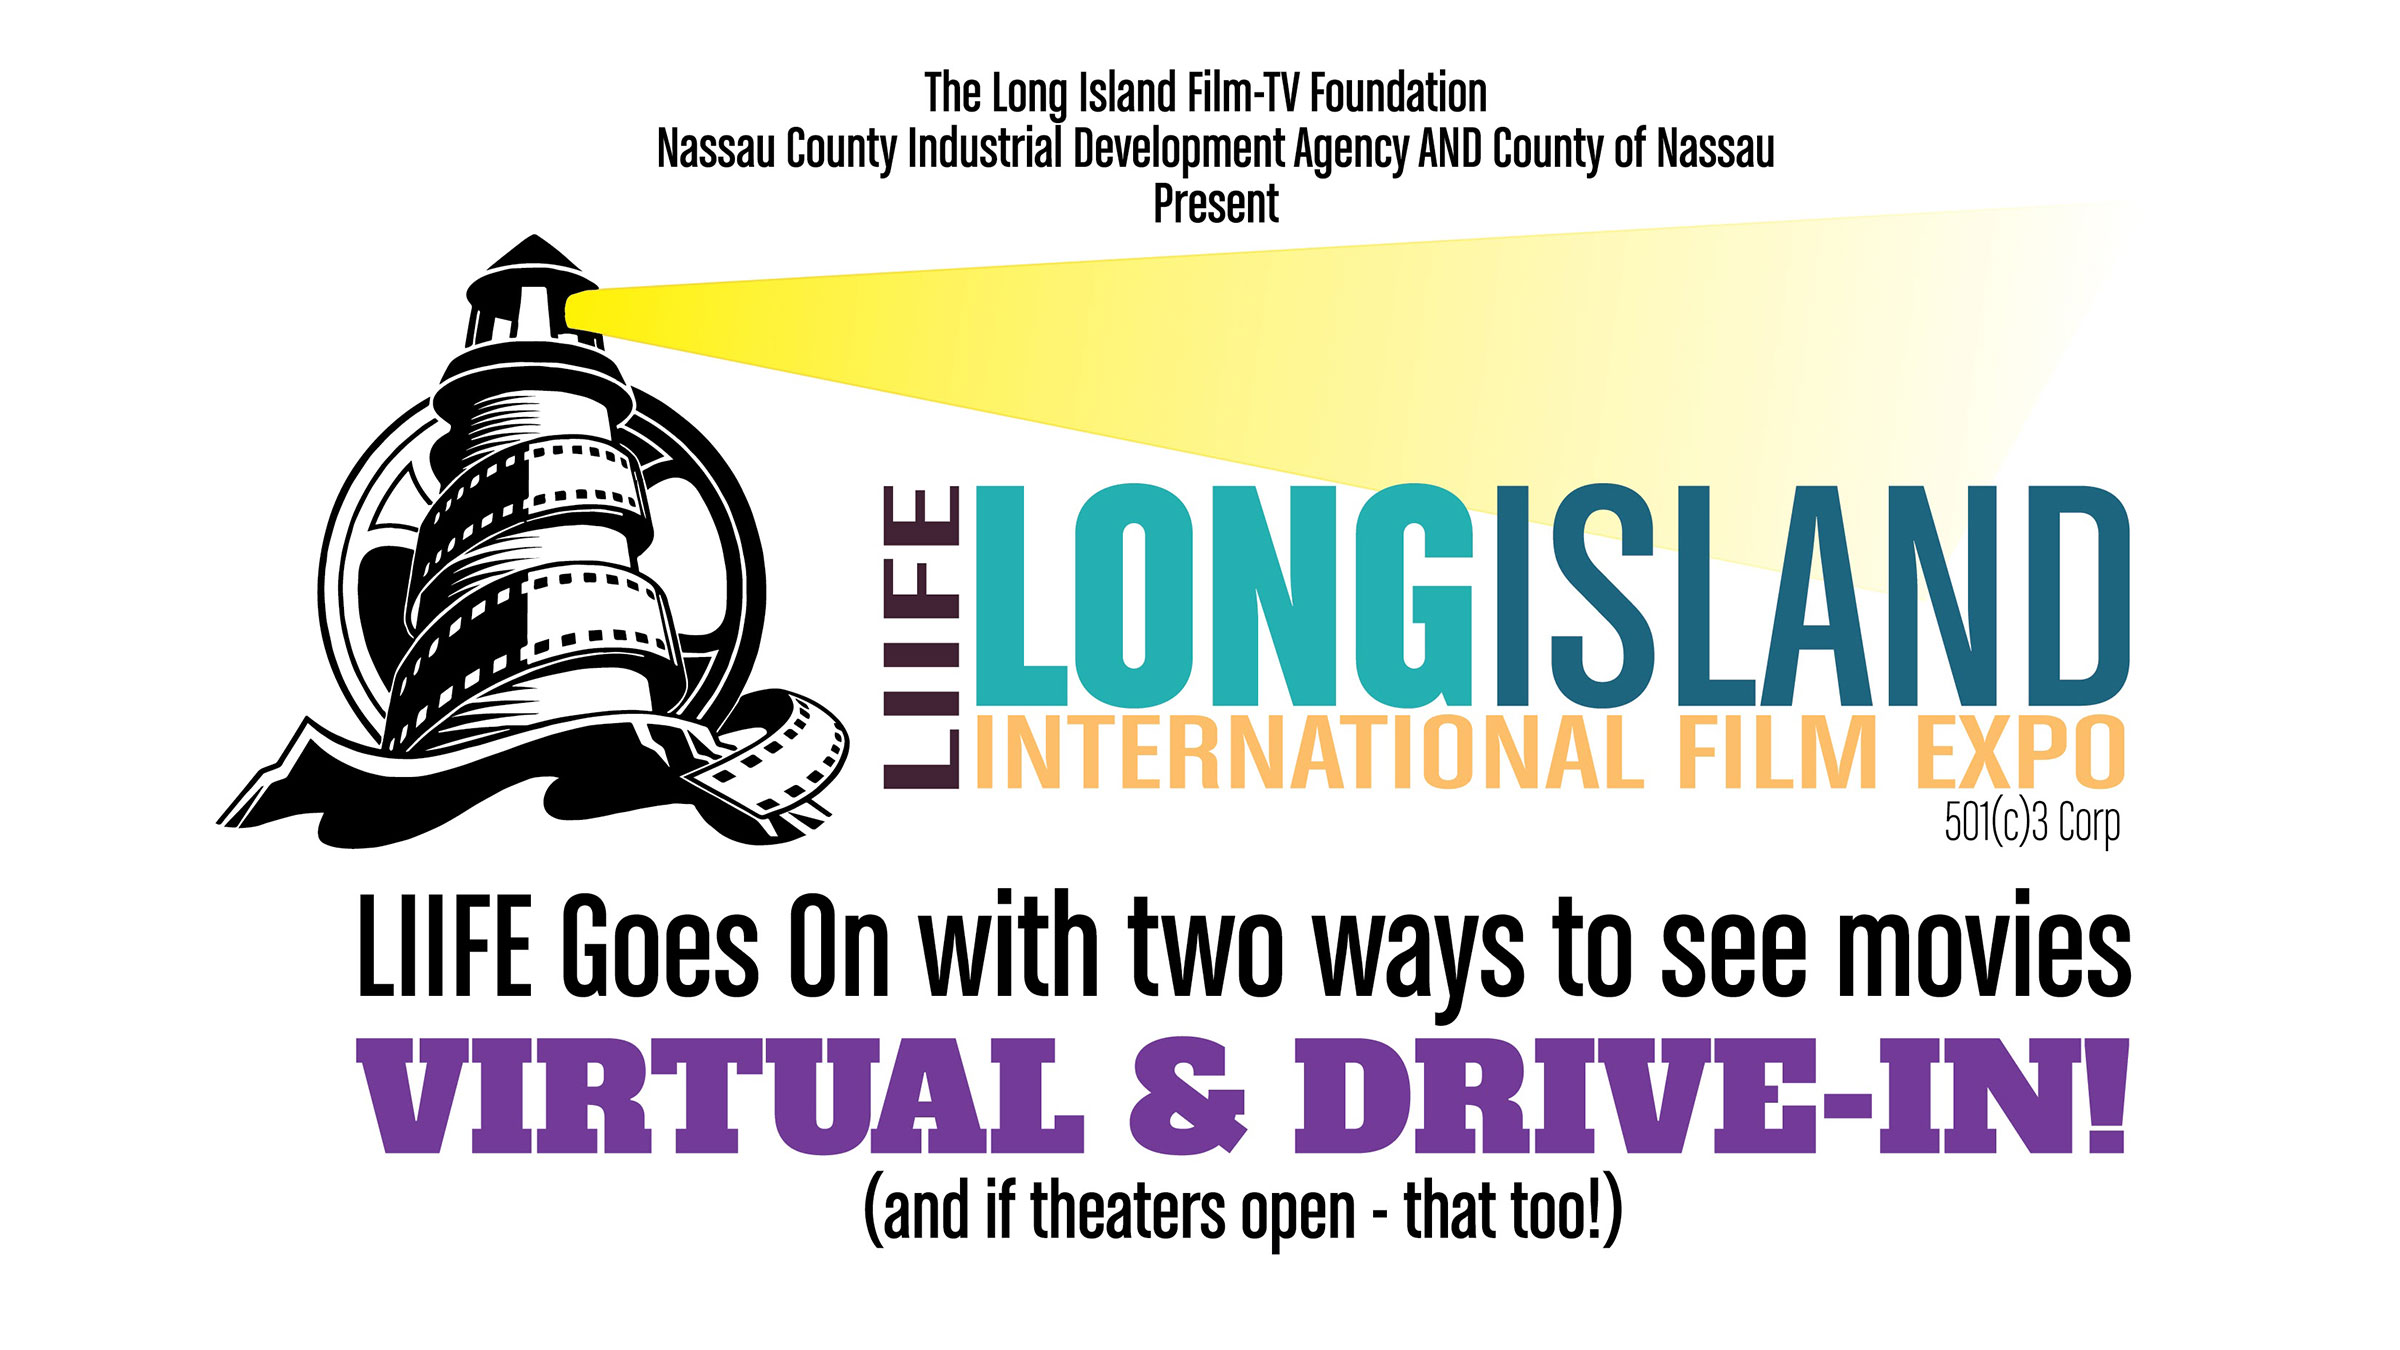 LIIFE GOES ON! The 23rd Annual Long Island International Film Expo to Show Virtual and Drive-In Movies, September 30 - October 8, 2020